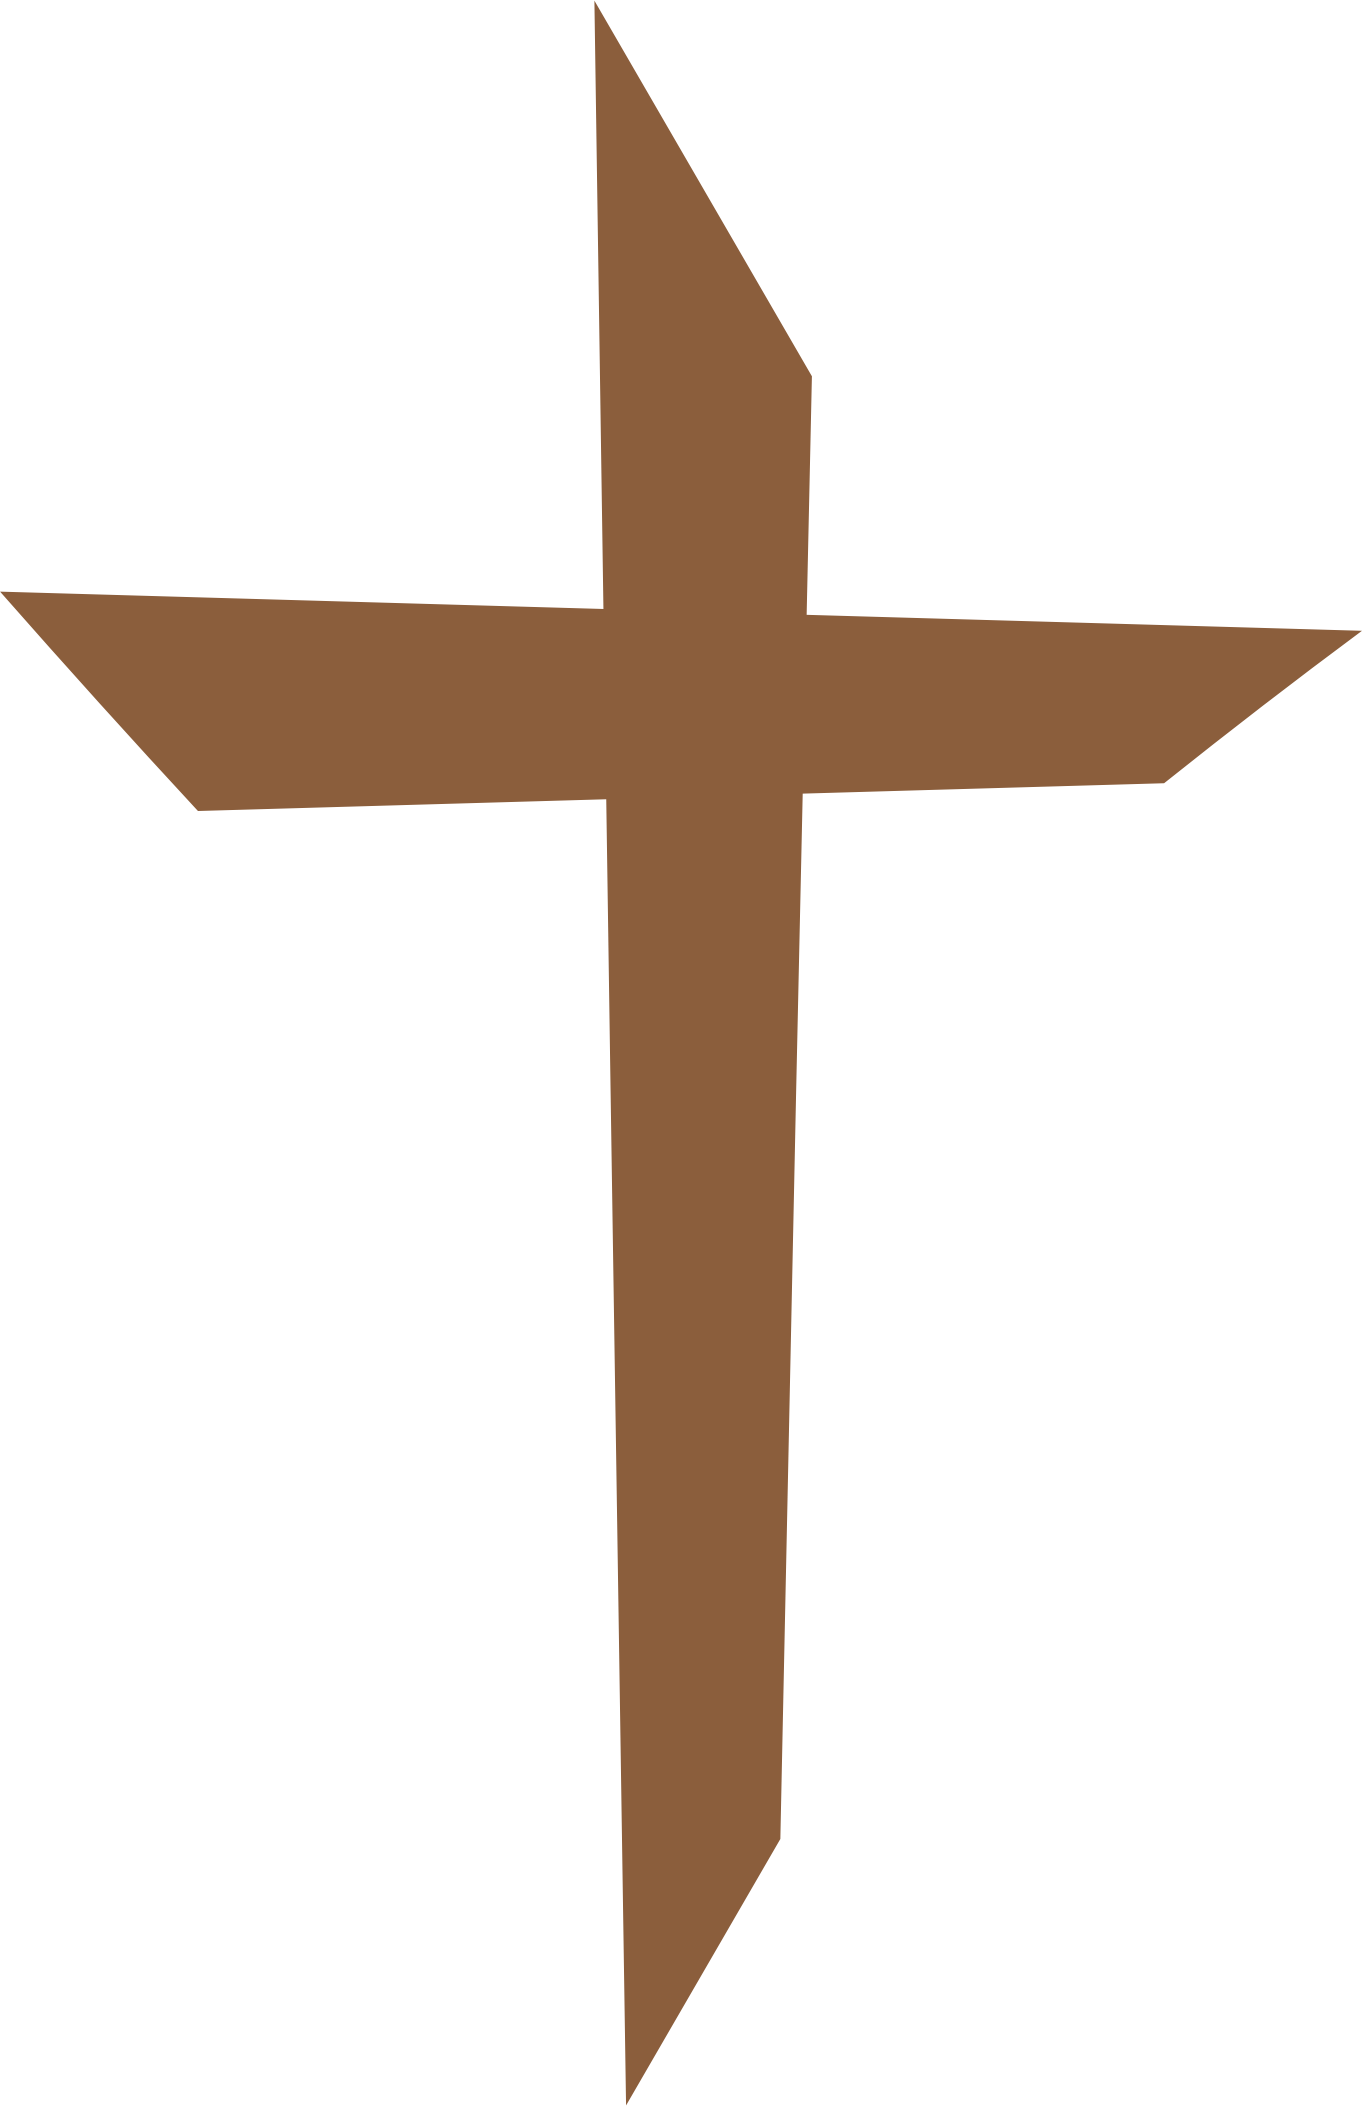 Religious clipart cross image royalty free stock Christian Cross Clipart at GetDrawings.com | Free for personal use ... image royalty free stock